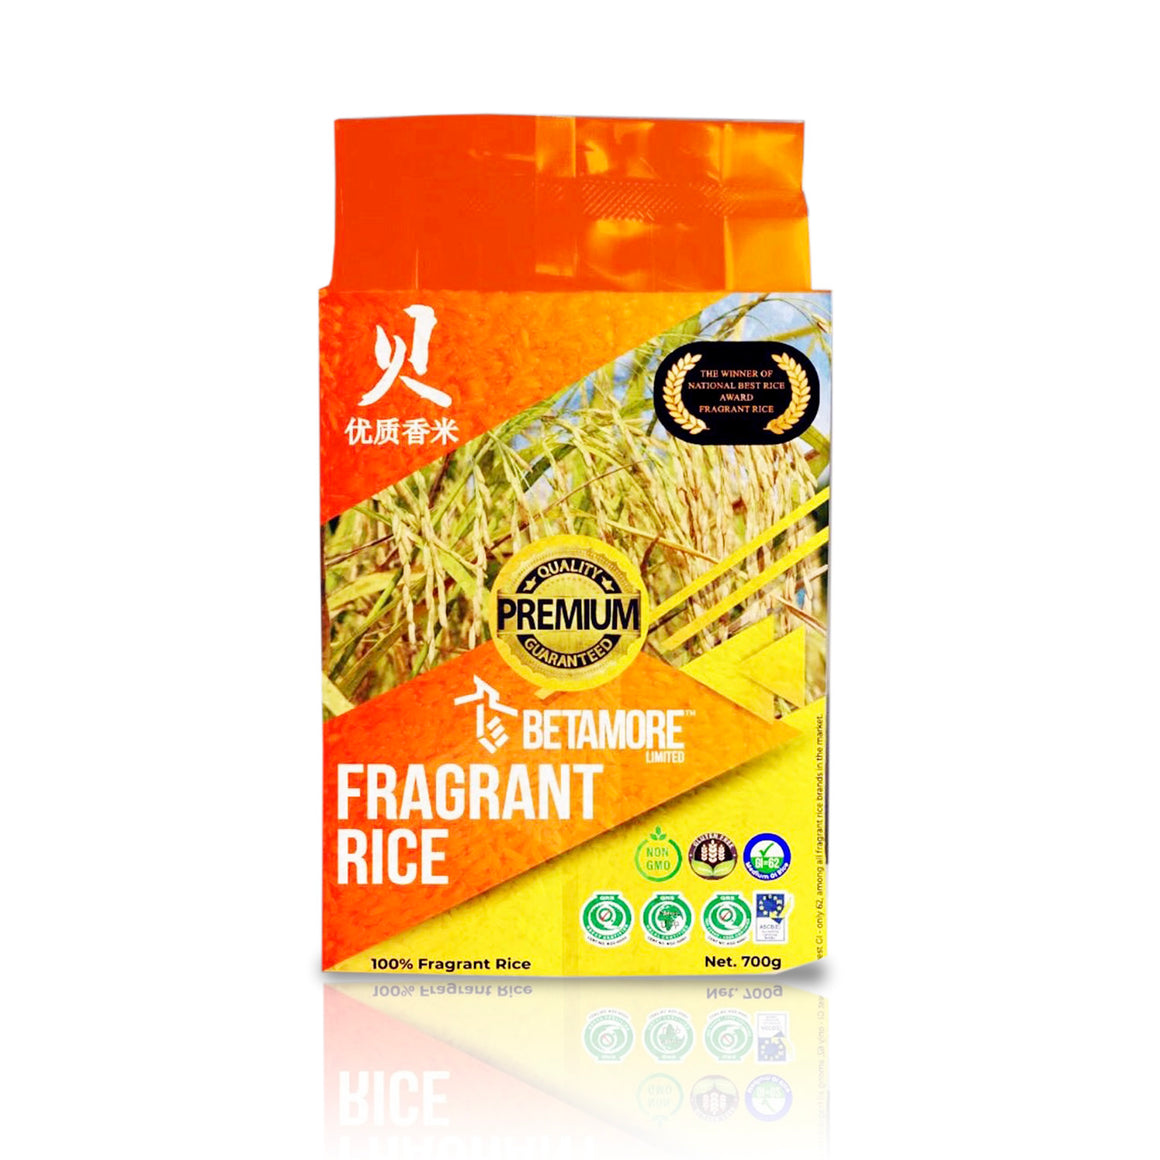 14 Packs Betamore Premium Fragrant Rice - 700g